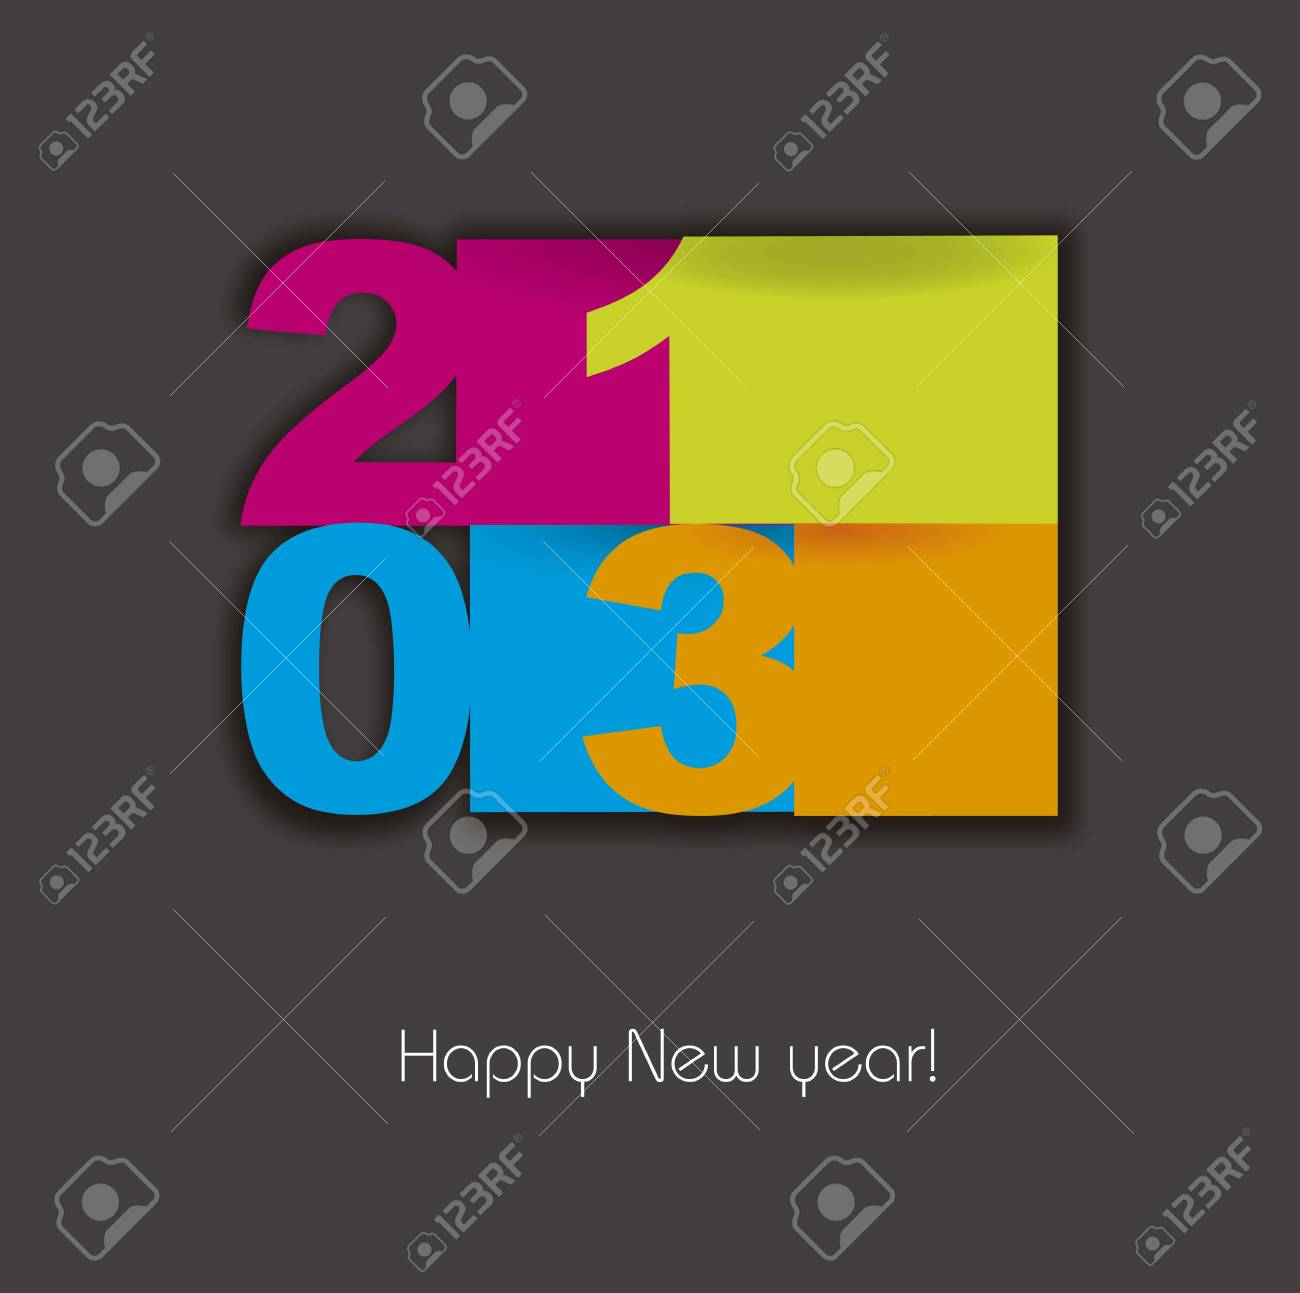 happy new year 2013 over gray background illustration Stock Vector - 15068061